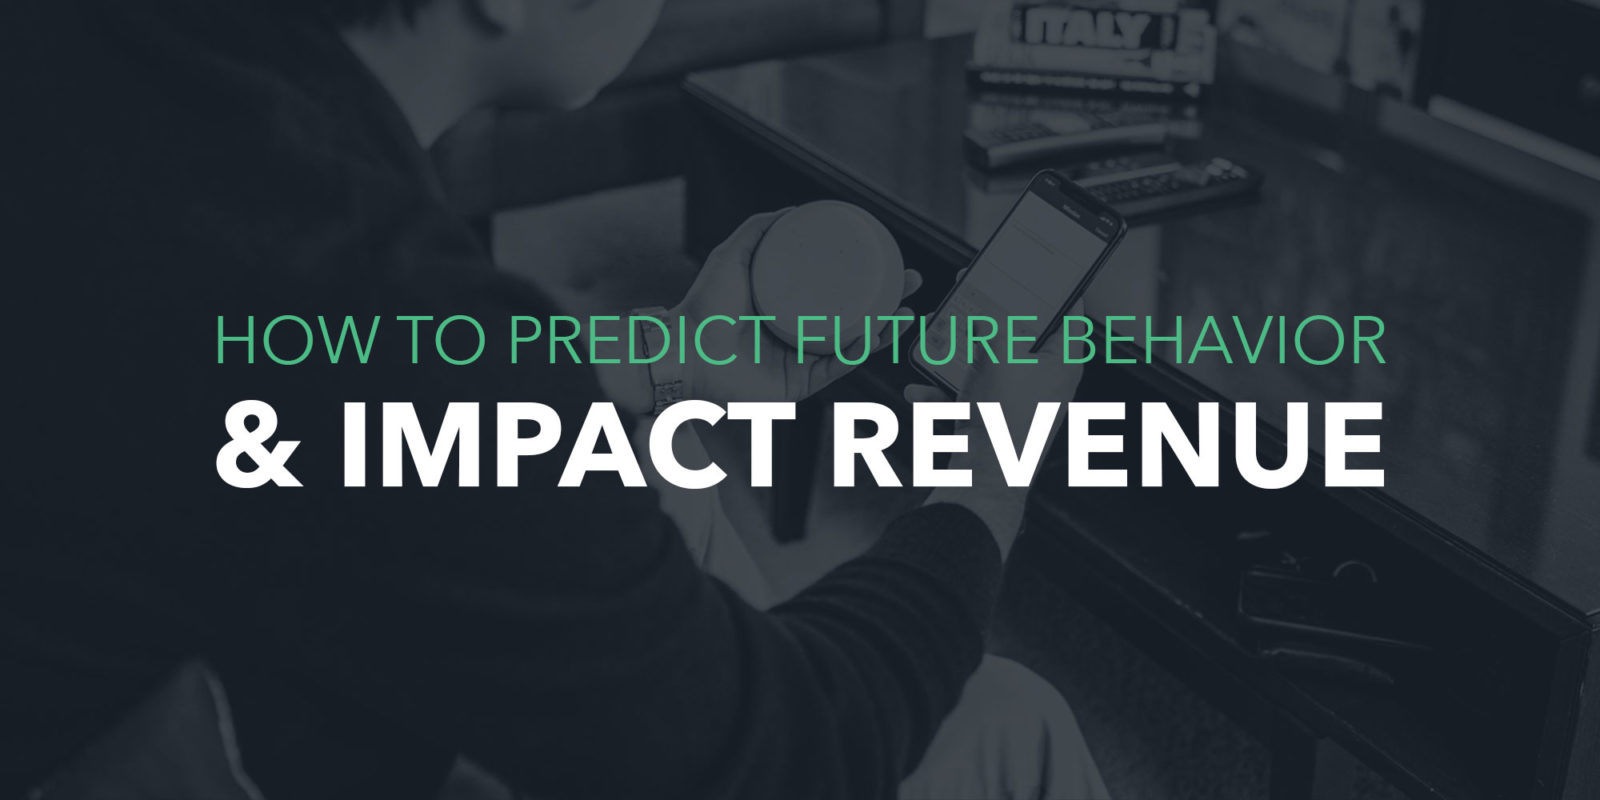 How to predict future behavior & impact revenue.